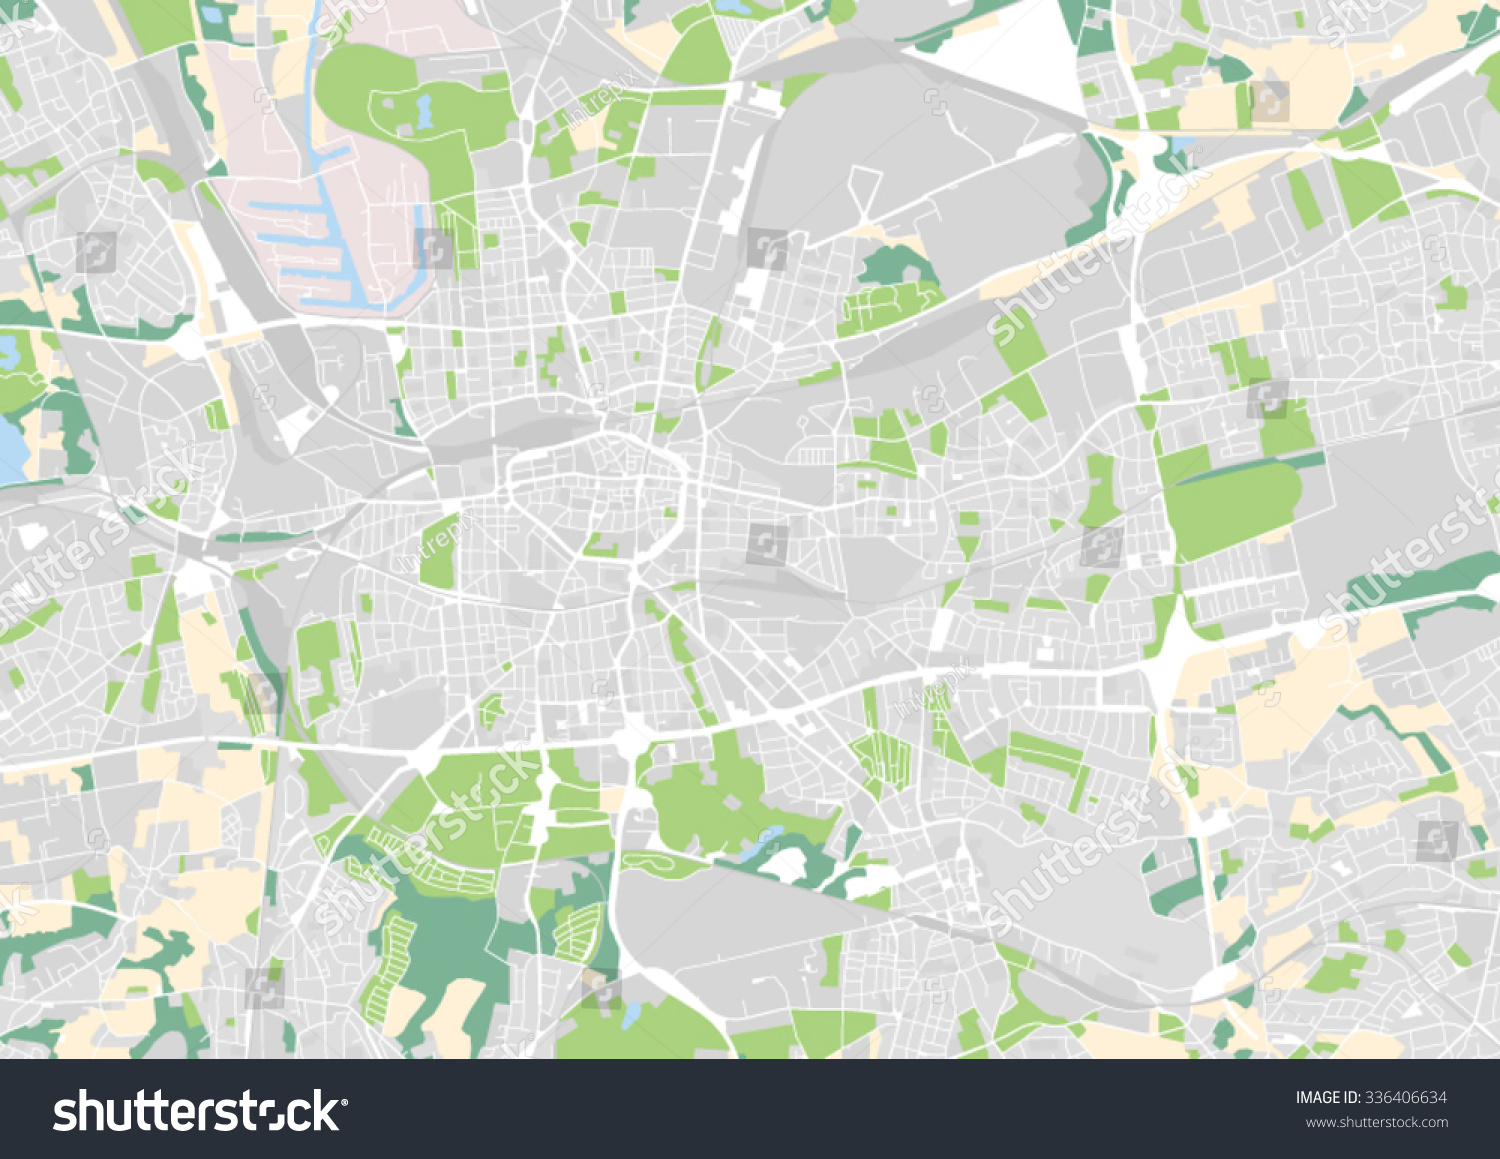 vector city map of dortmund germany